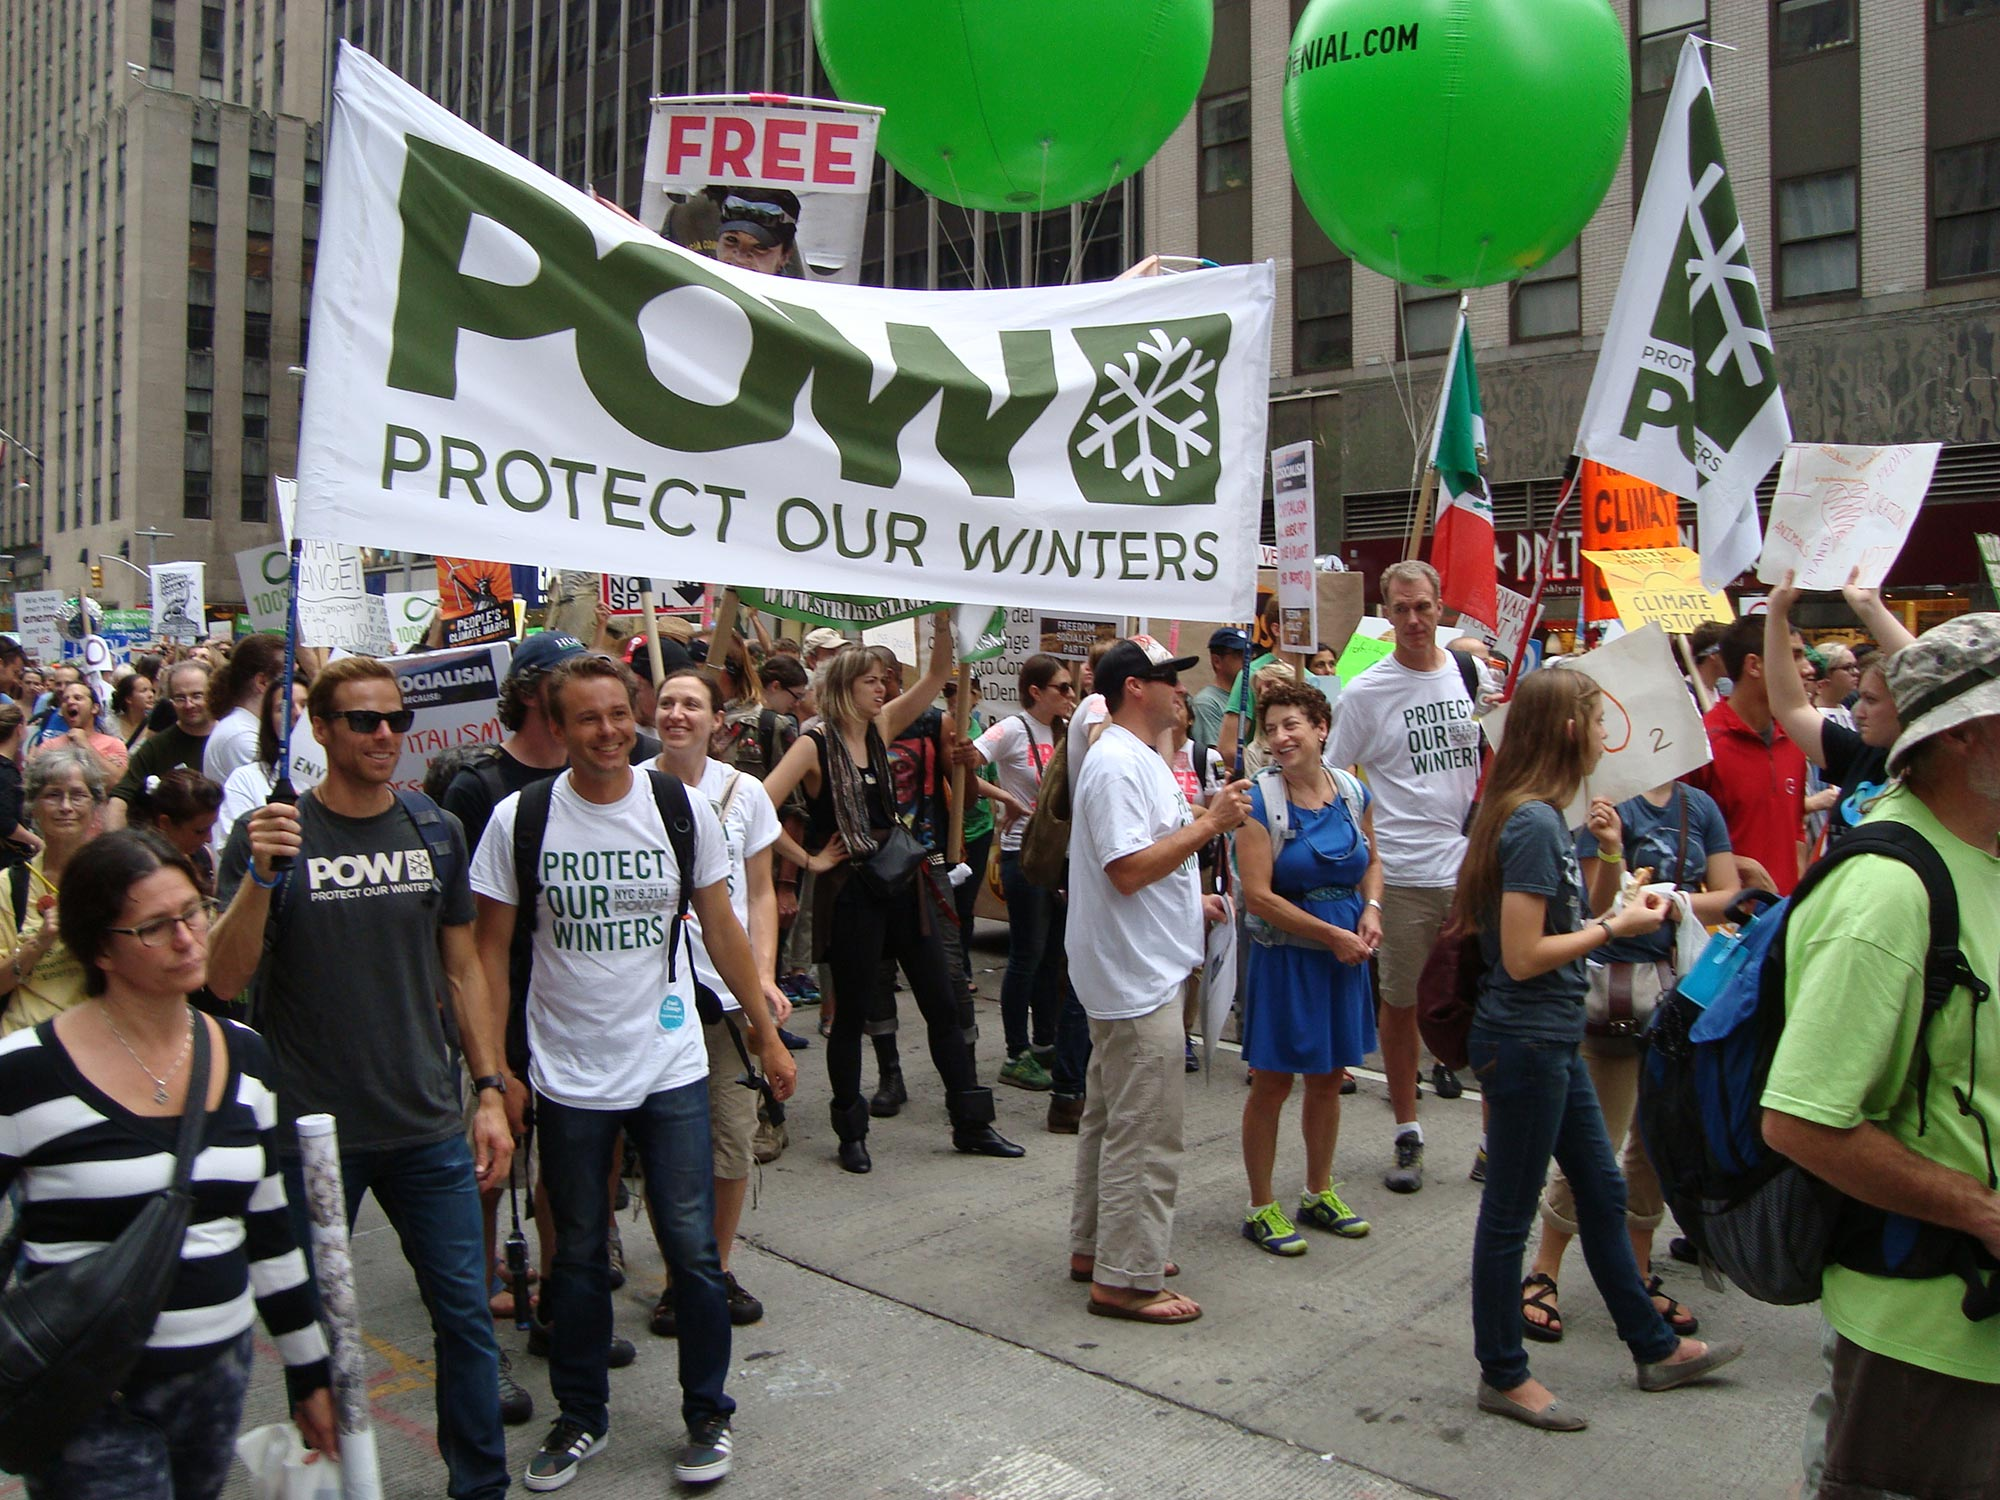 Andy Newell takes Manhattan on behalf of Protect our Winters. Andy Newell